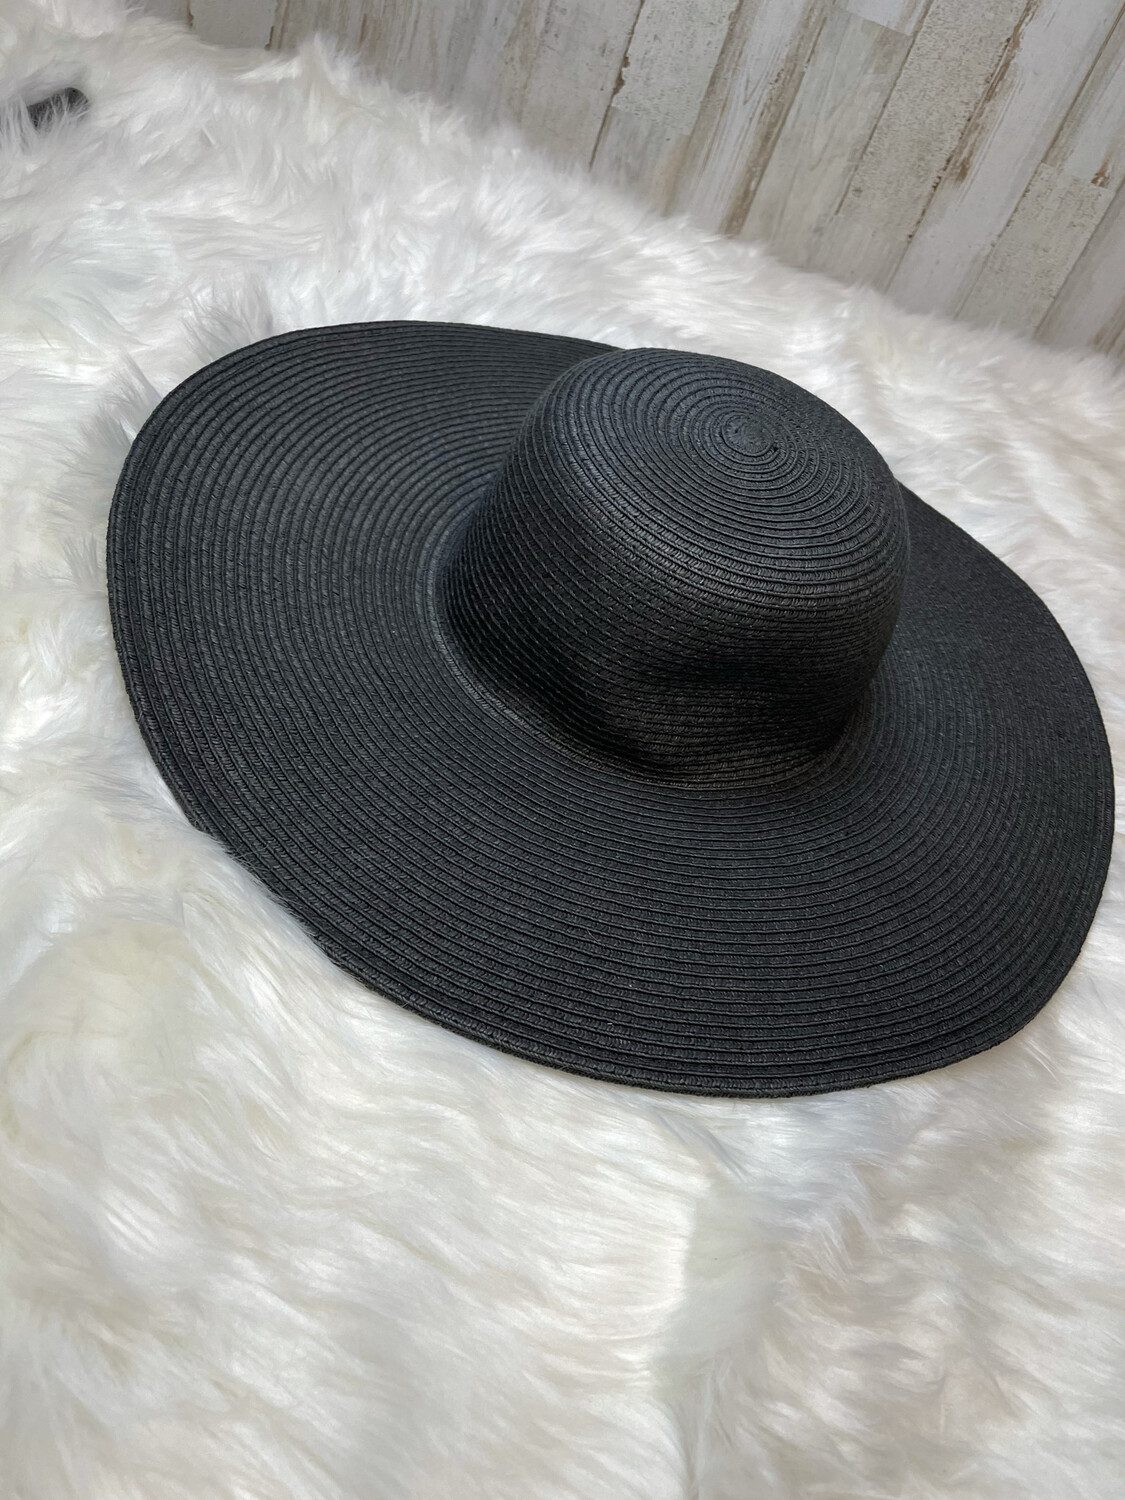 J. Crew Black Floppy Hat